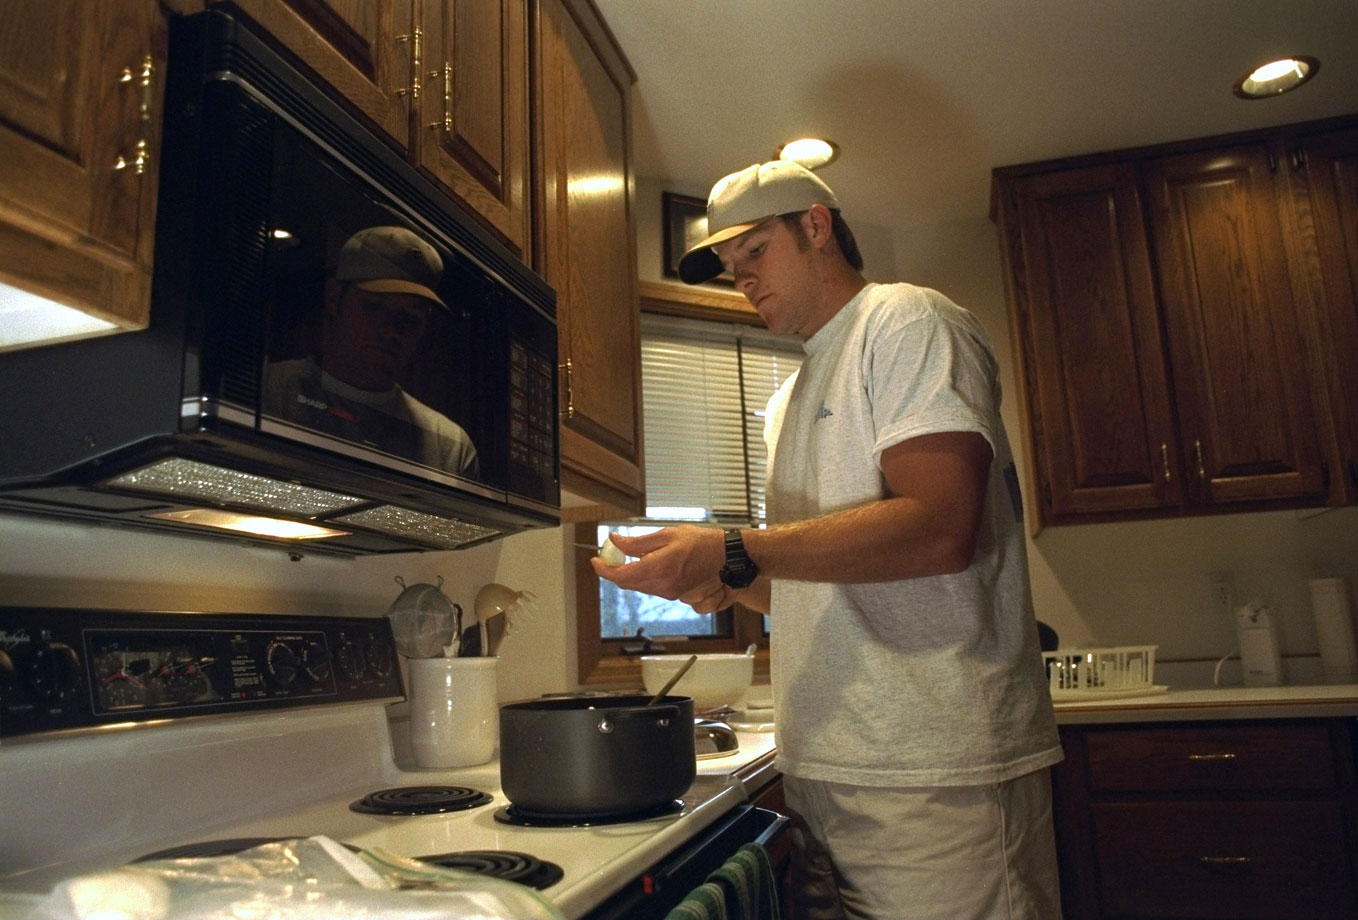 Back home Favre cooks dinner...